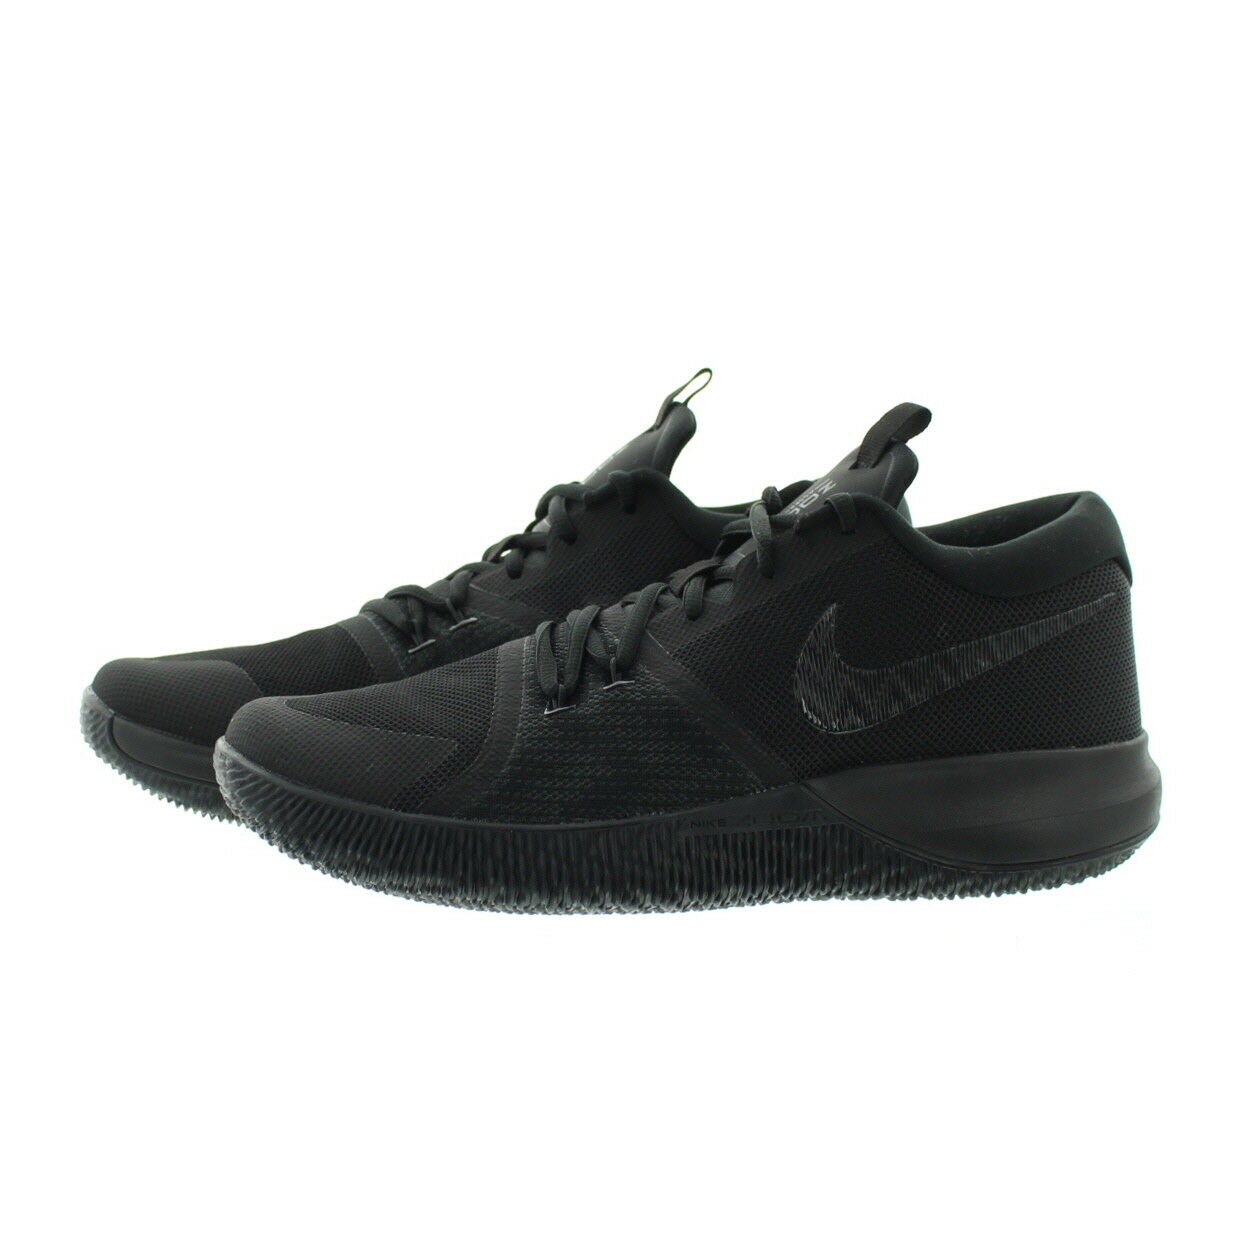 Nike Nike Nike 917505 Mens Zoom Assersion Lightweight Breathable Basketball Shoes Sneakers 80d4d7